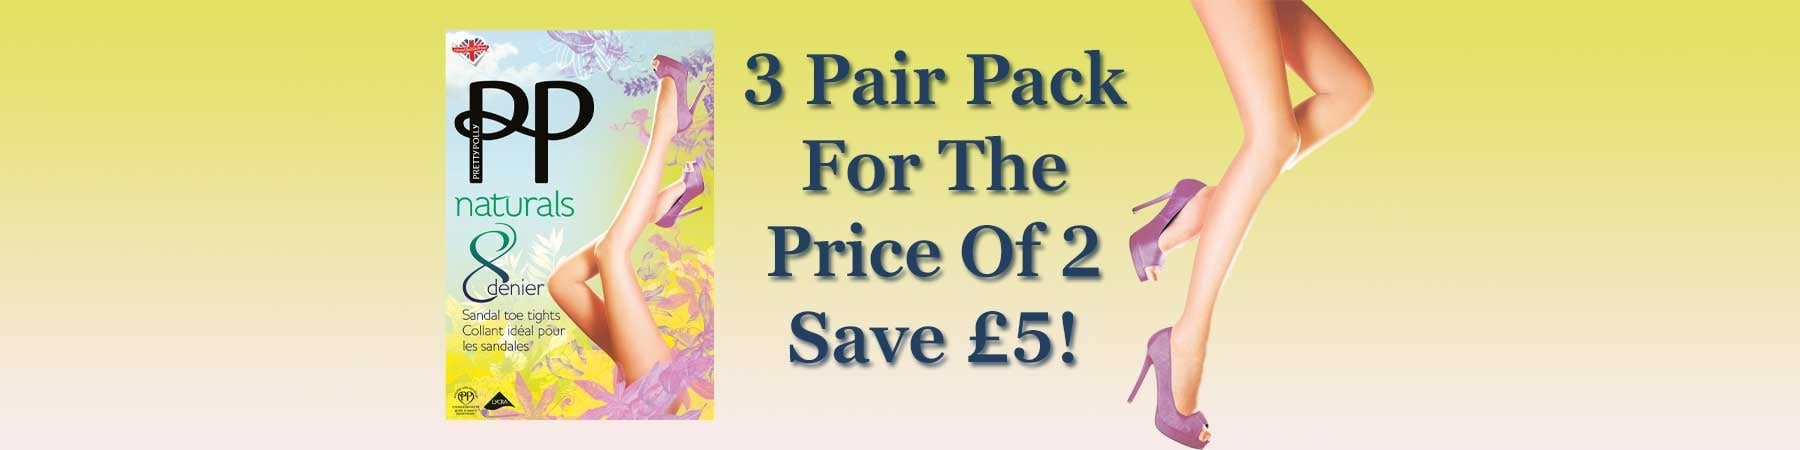 Pretty Polly 3 for 2 Offer